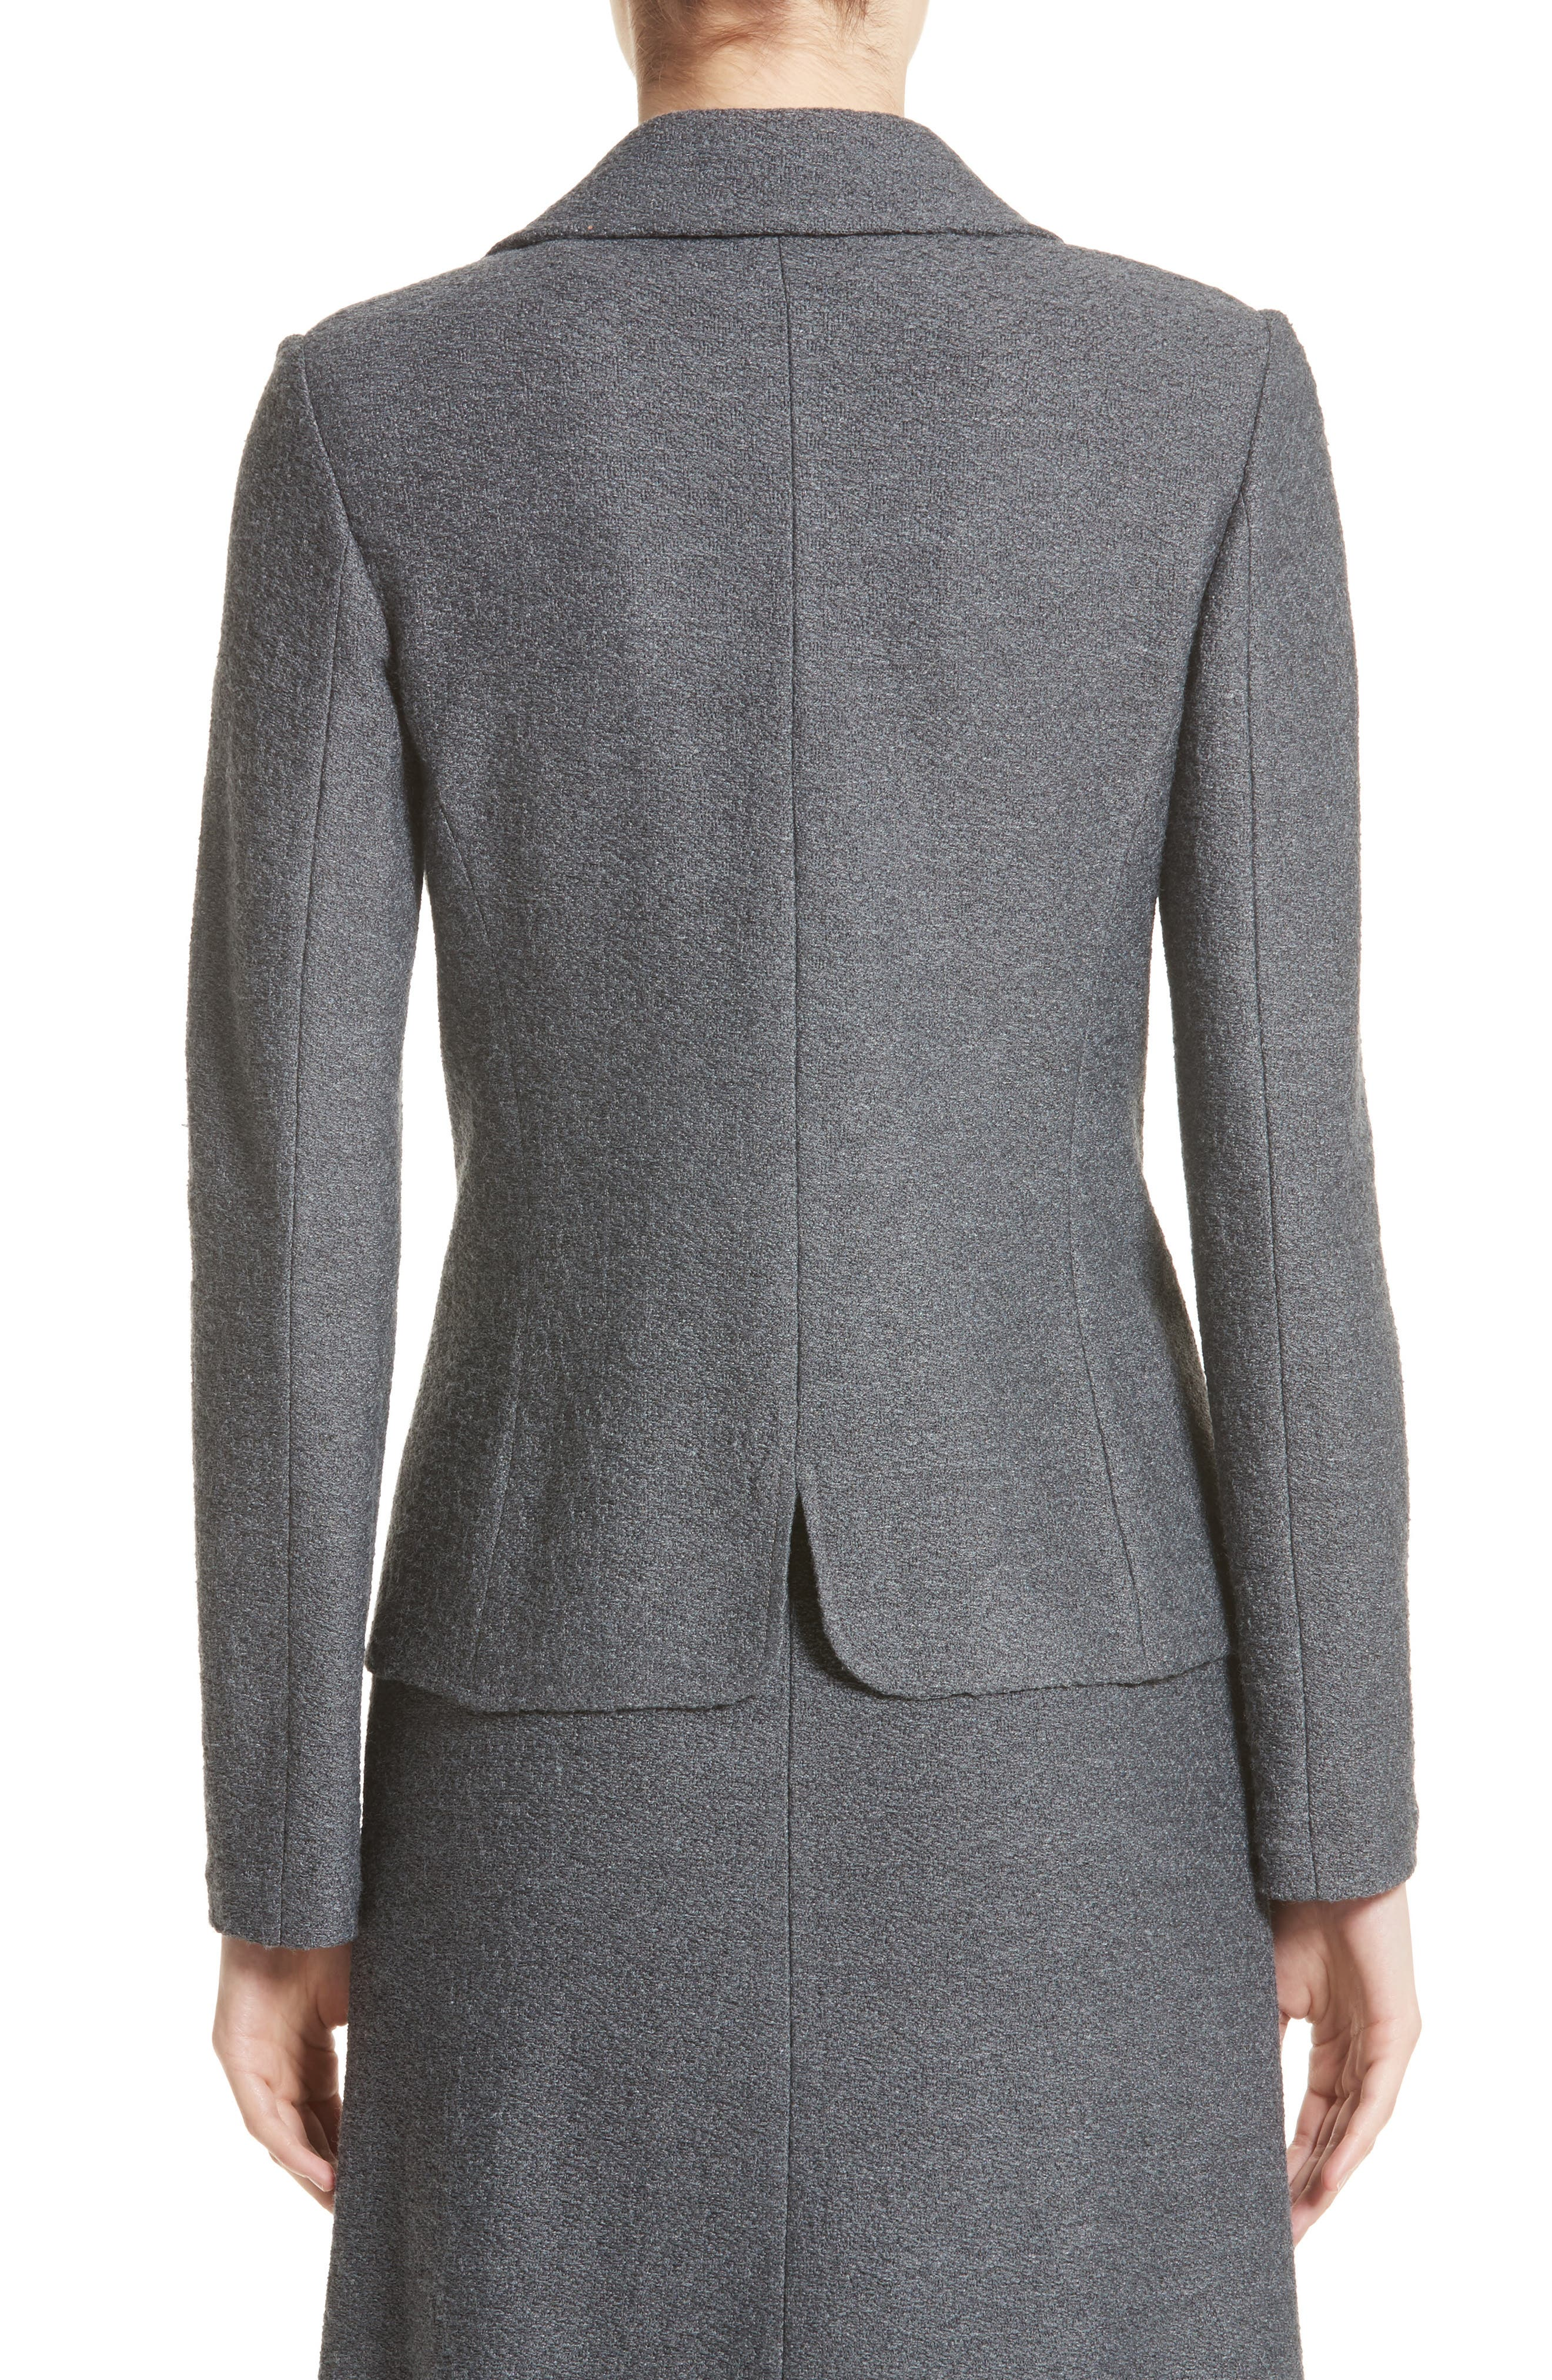 Alternate Image 2  - St. John Collection Clair Grommet Detail Knit Jacket